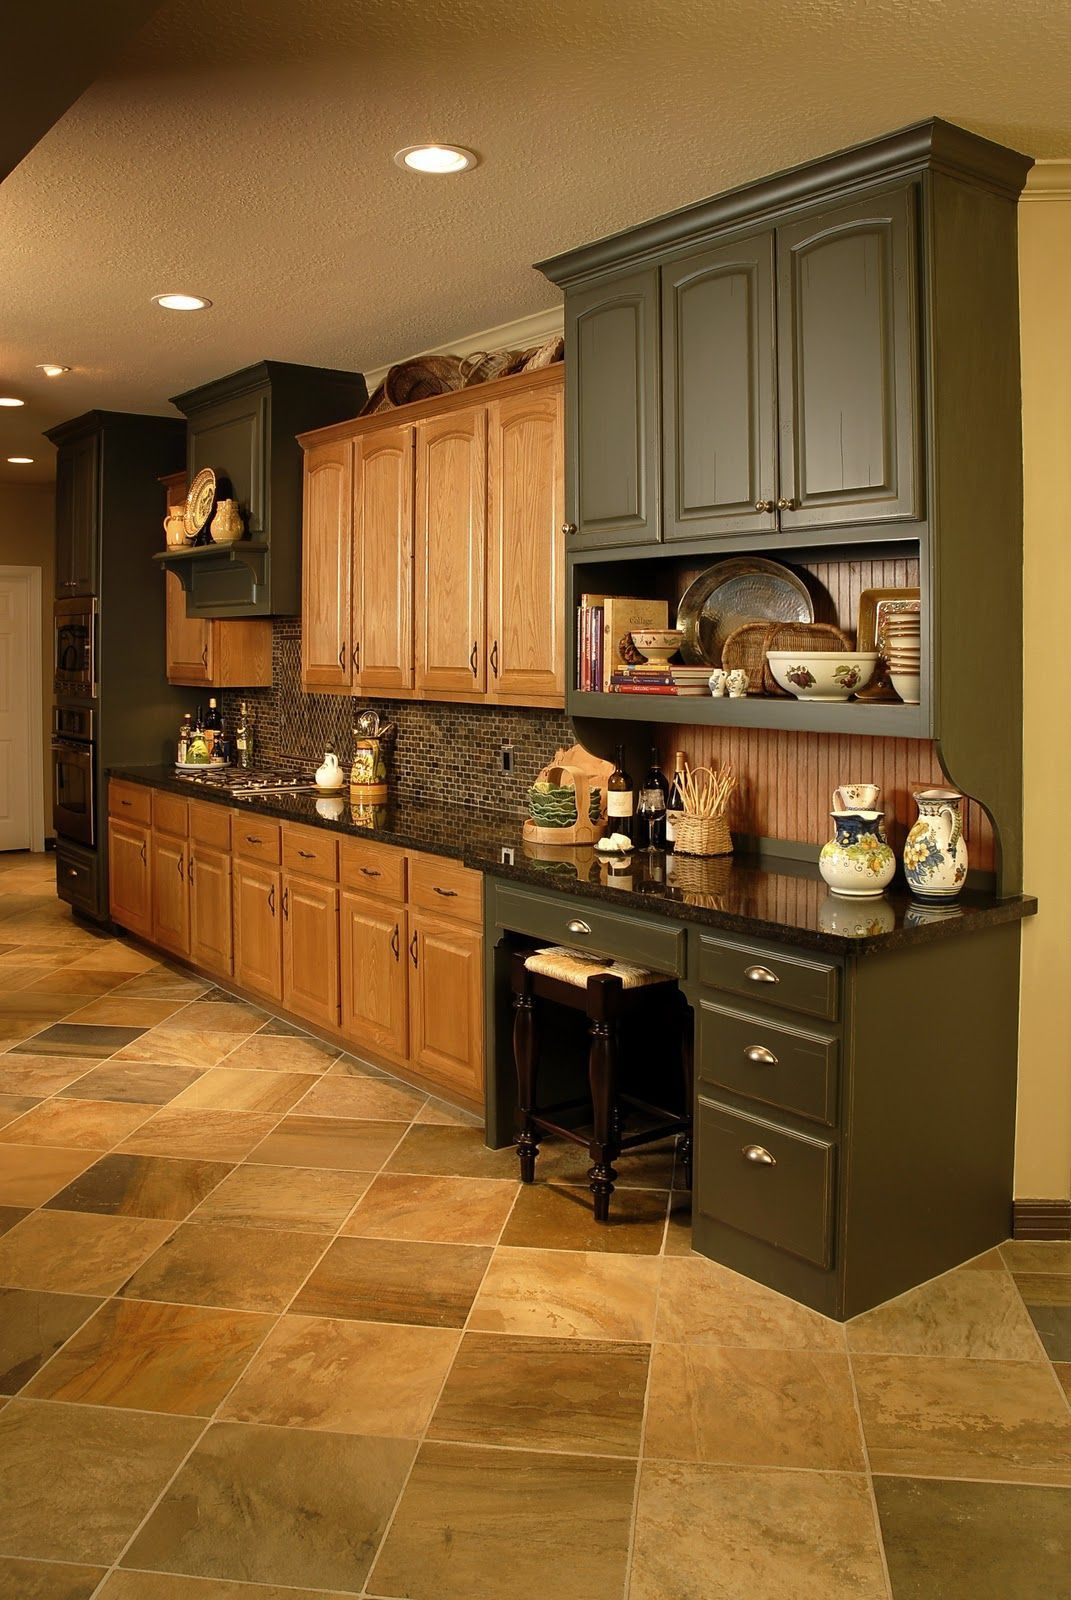 Used Kitchen Cabinets In Maryland 2020 In 2020 Home Kitchens Updating Oak Cabinets Oak Kitchen